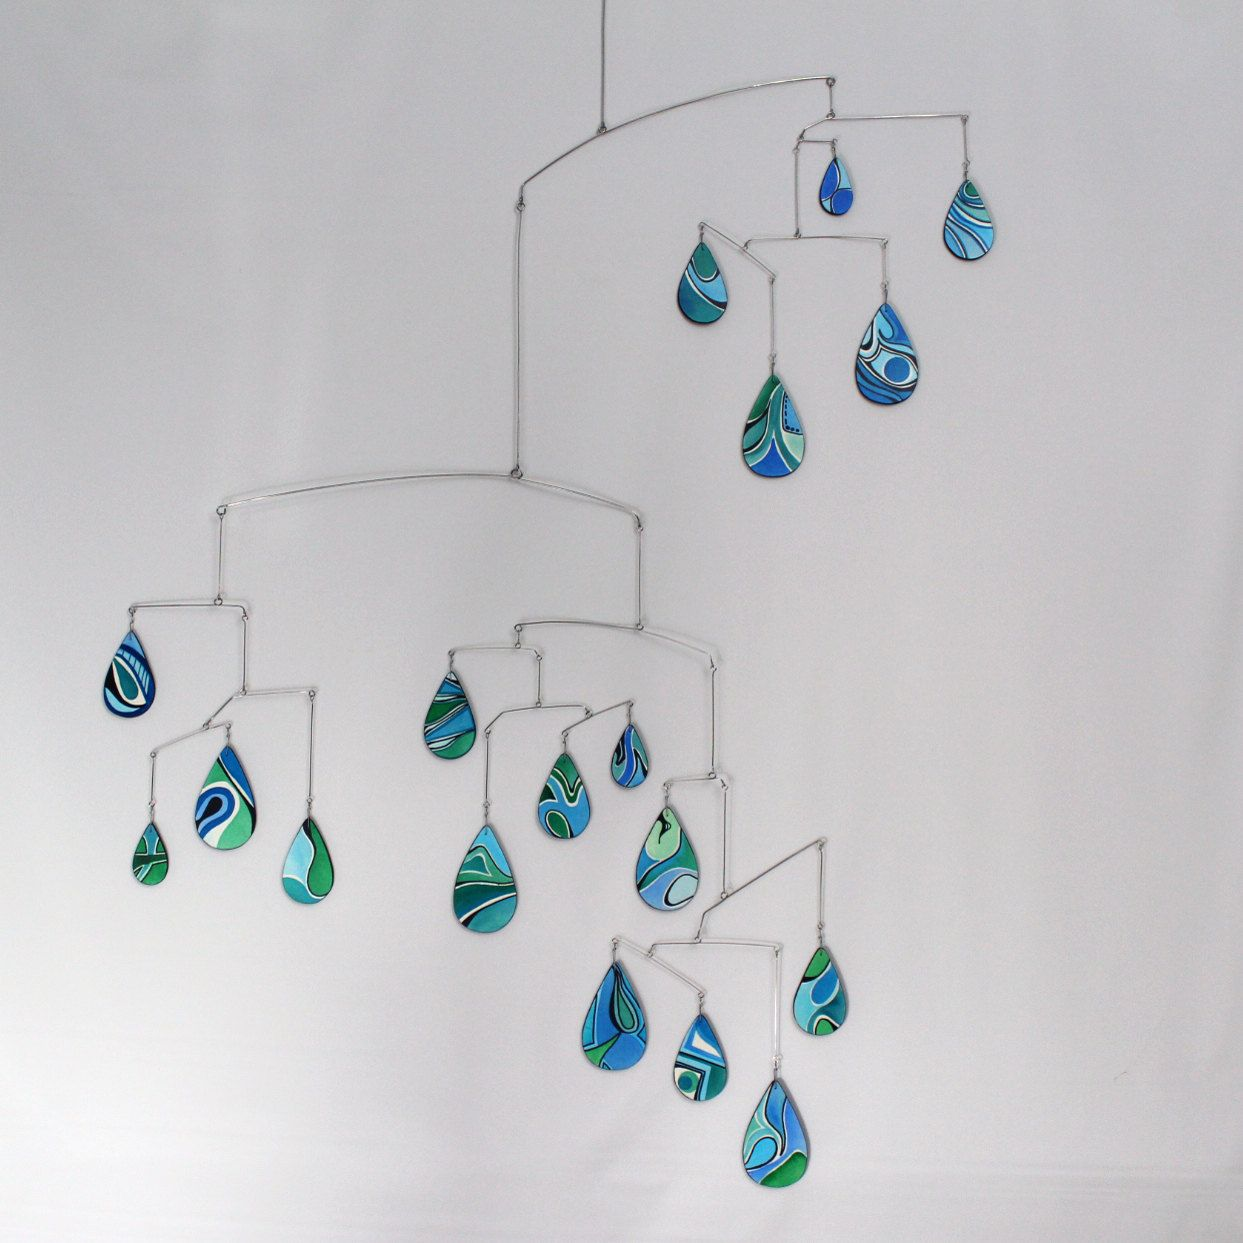 Large Raindrops Art Mobile Spring Shower Hanging